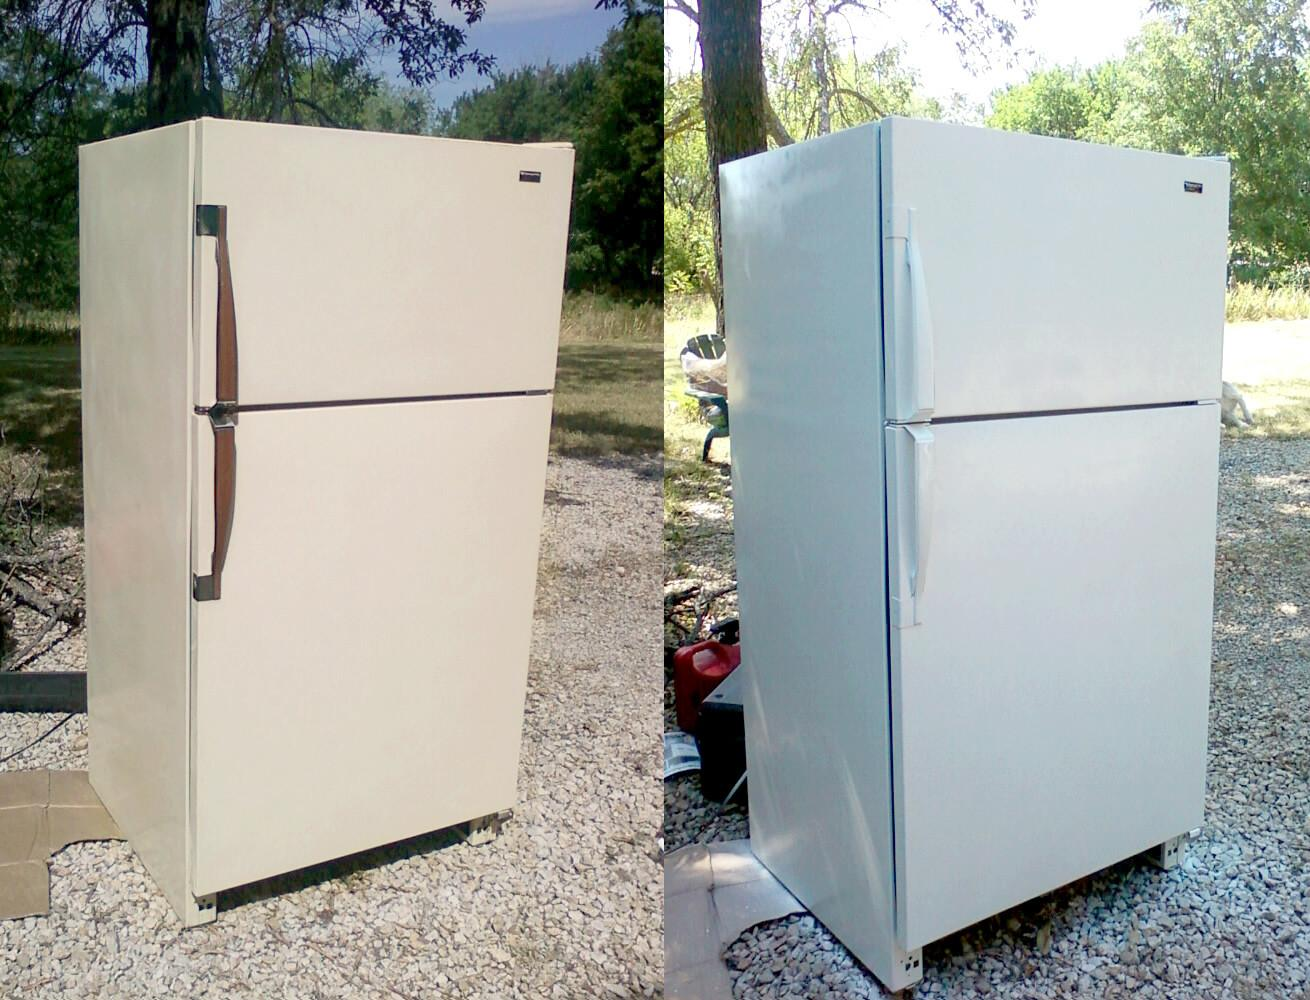 Refinishing Fridge Diy Home Projects